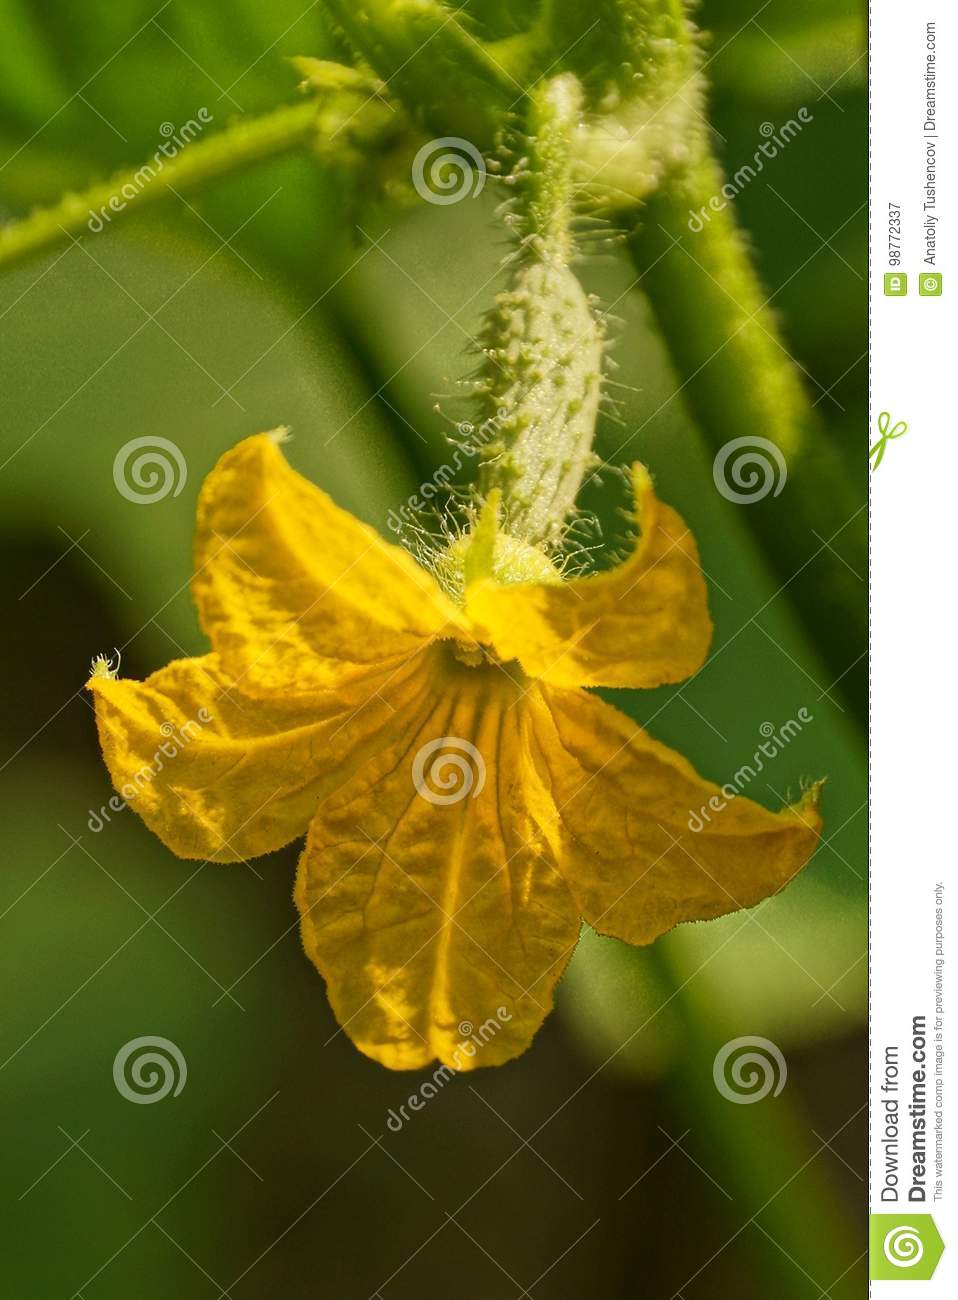 A Yellow Flower And A Small Cucumber On A Stalk In The Garden Stock